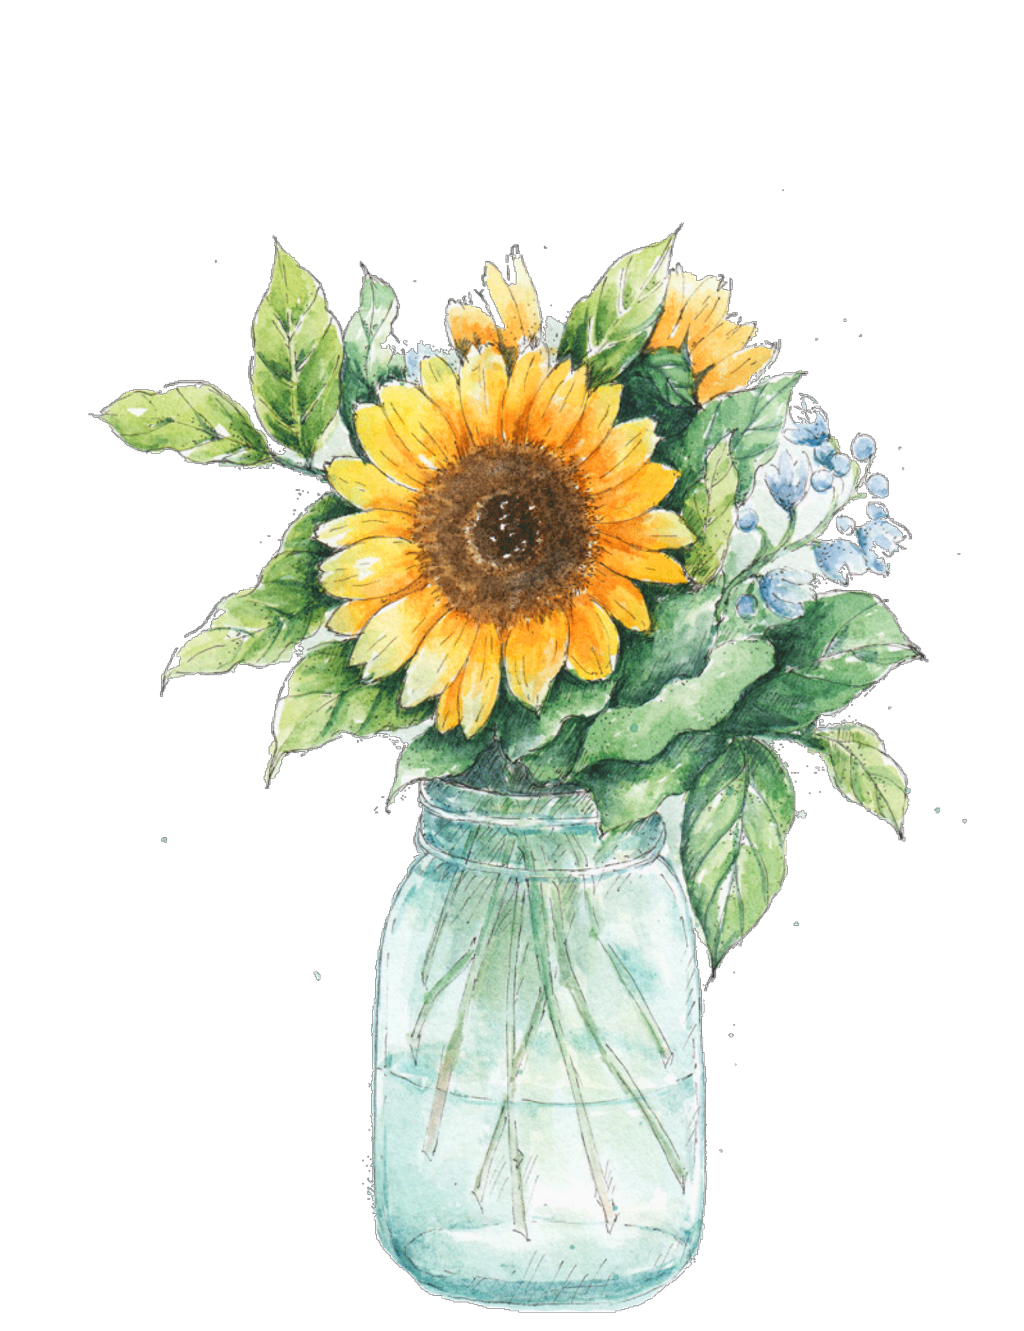 Sunflower clipart watercolor. Ftestickers masonjar sticker